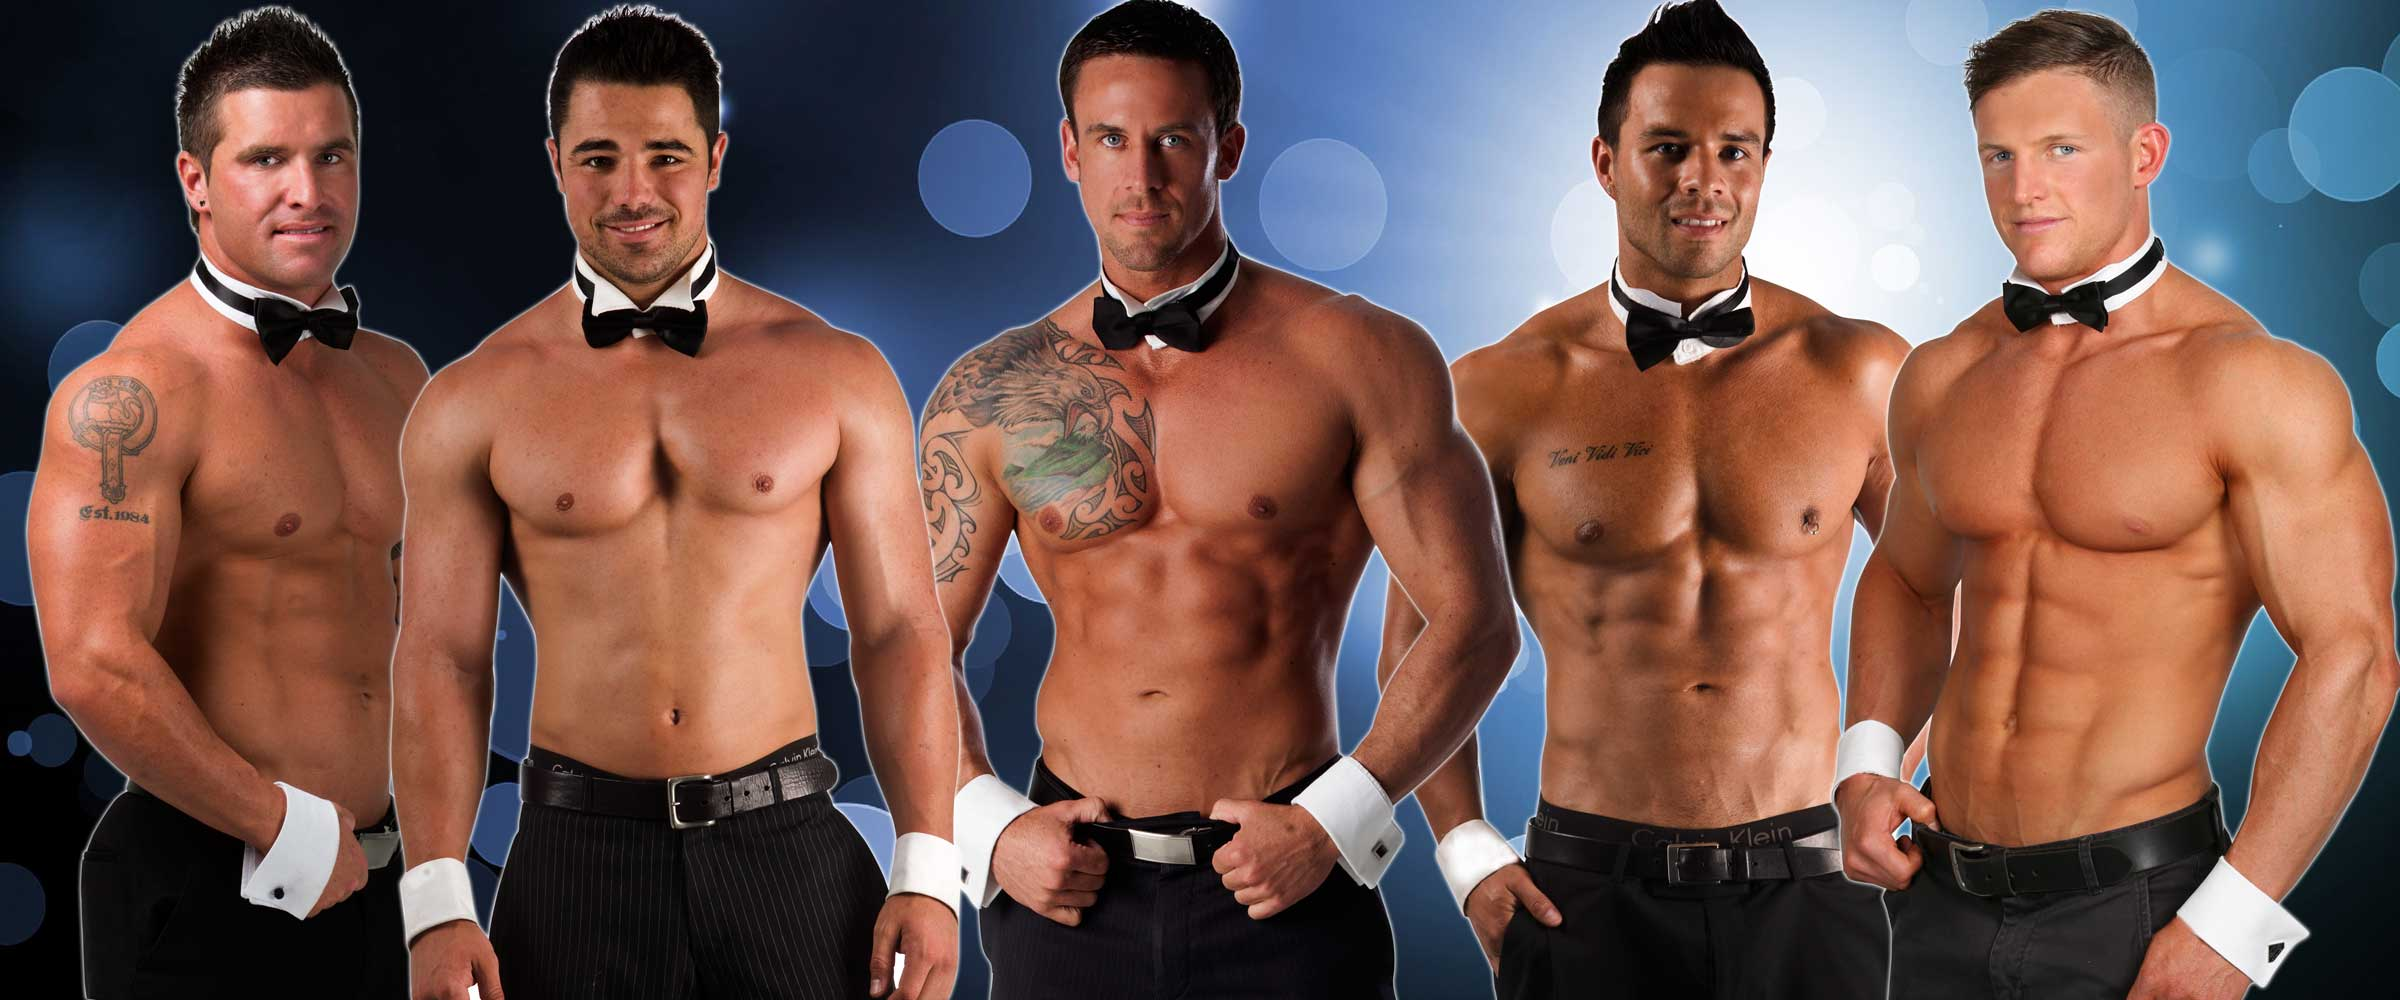 Allstar-Topless-Waiters